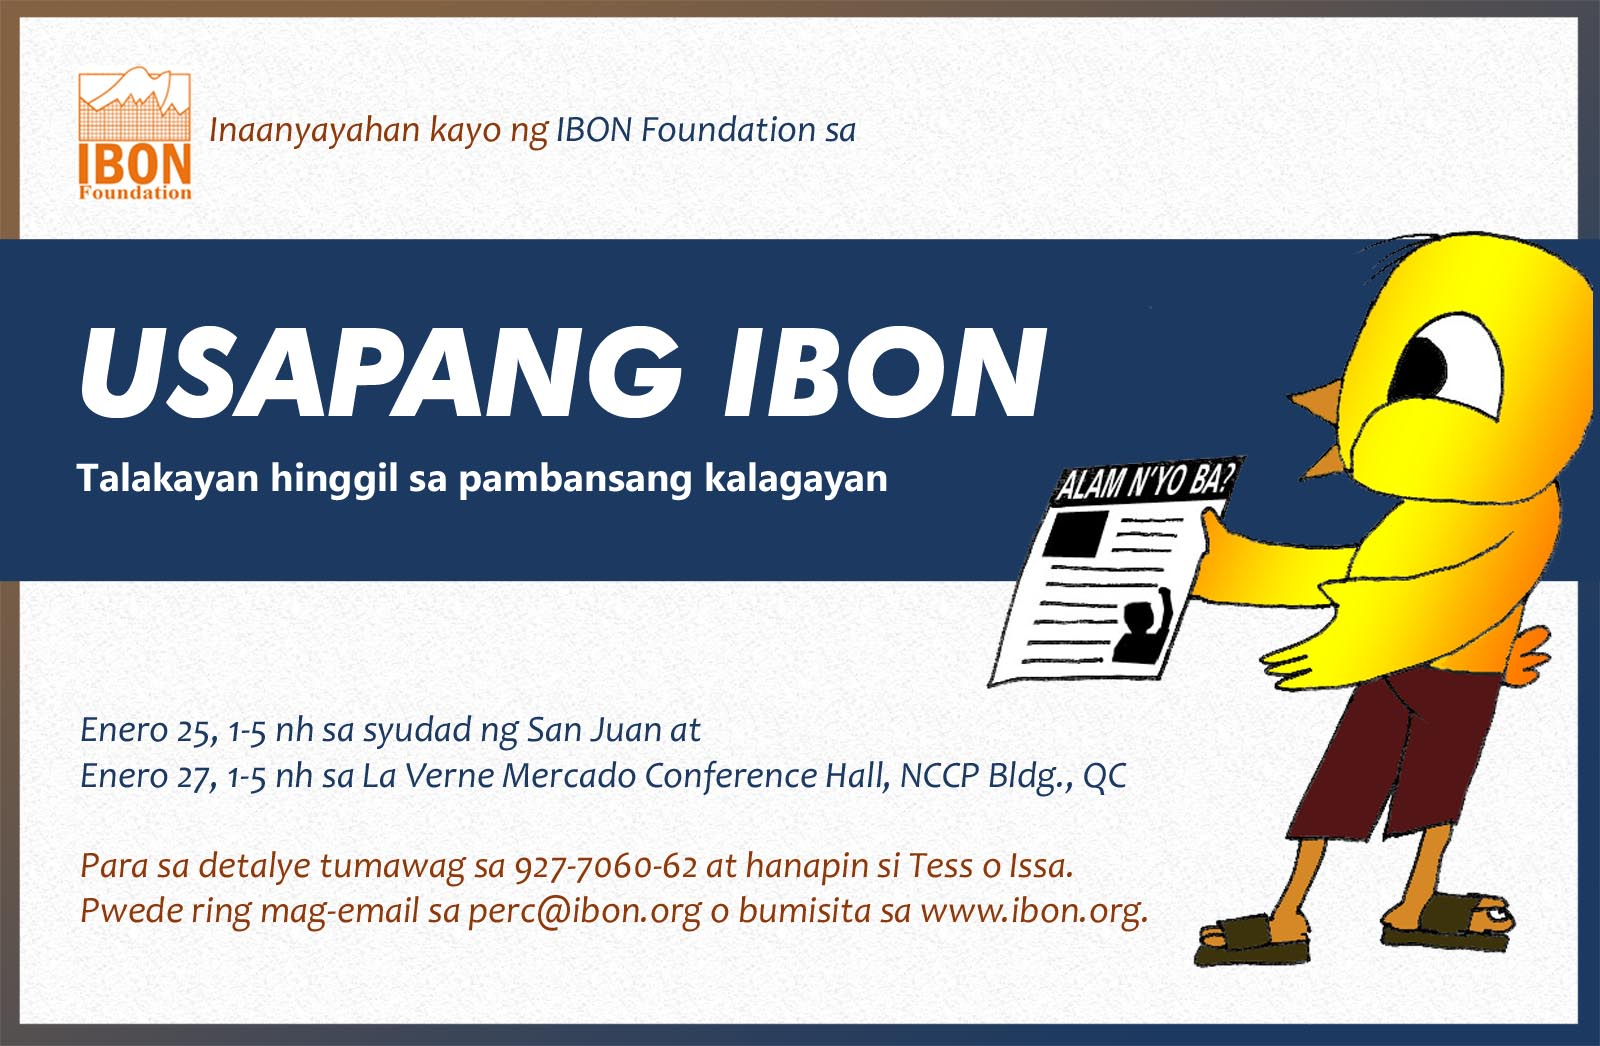 ibon birdtalk Block the dates: july 15 for teachers and students, july 14 for other sectors esp business, academe, religious, ngos, people's organization leaders, etc 1pm.